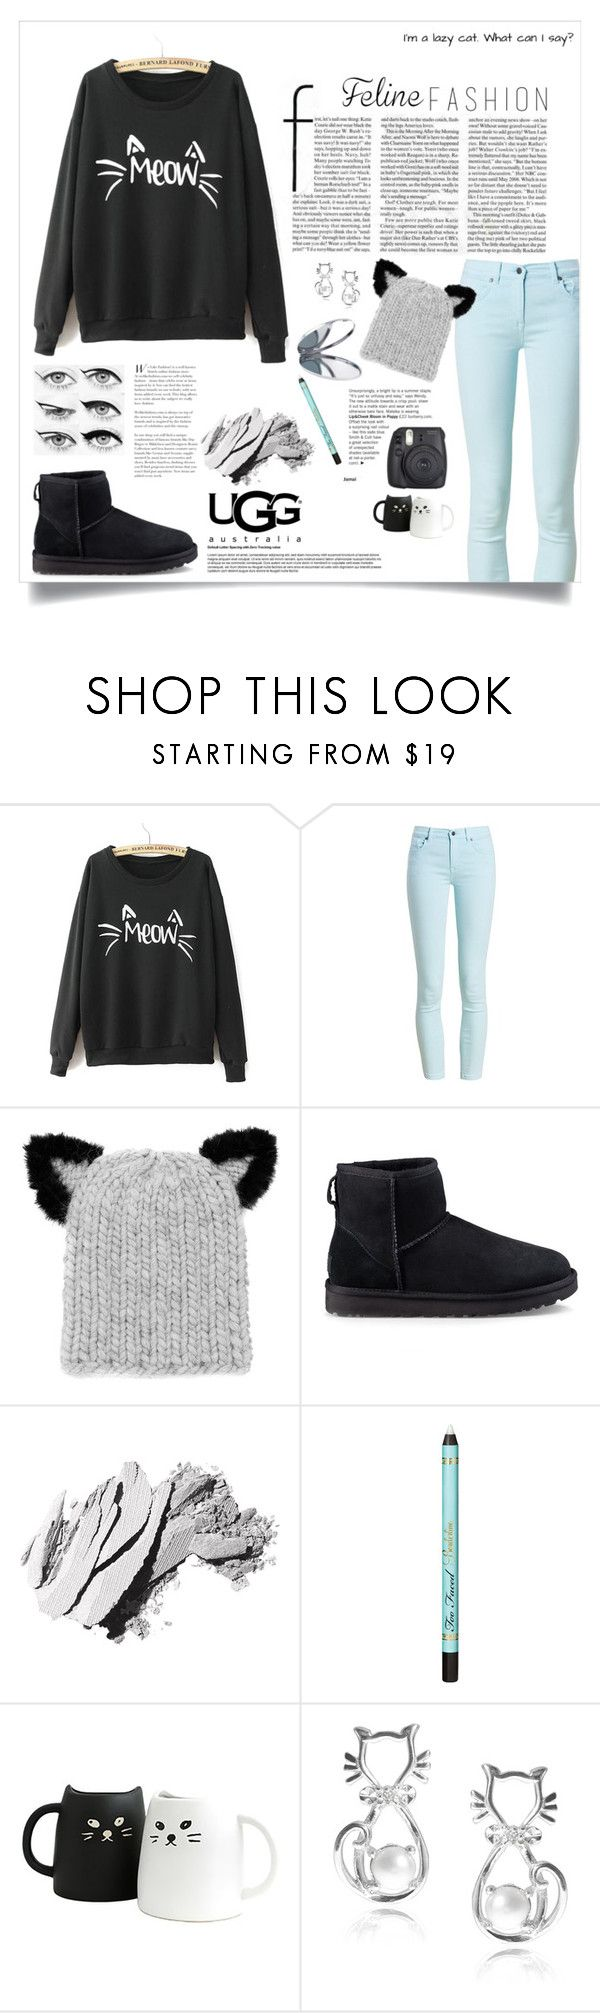 """Feline Fashion. ♡"" by jas-monique217 ❤ liked on Polyvore featuring WithChic, Barbour, Eugenia Kim, UGG, Bobbi Brown Cosmetics, UGG Australia, Eyeko, Journee Collection, Miss Selfridge and Fall"